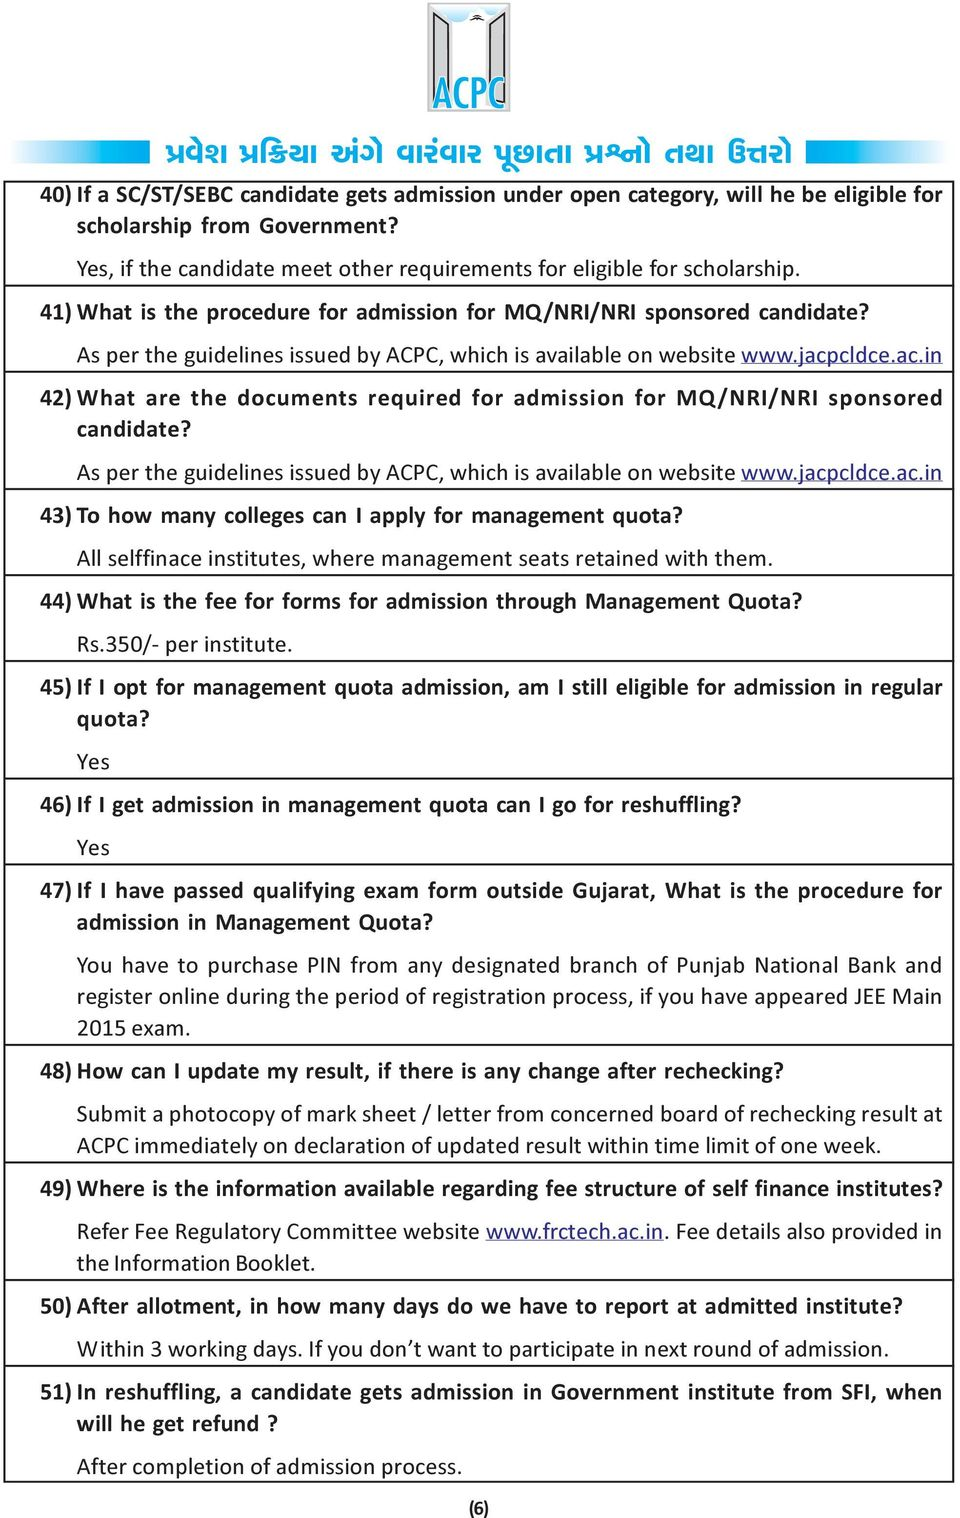 As per the guidelines issued by ACPC, which is available on website www.jacpcldce.ac.in 42) What are the documents required for admission for MQ/NRI/NRI sponsored candidate?